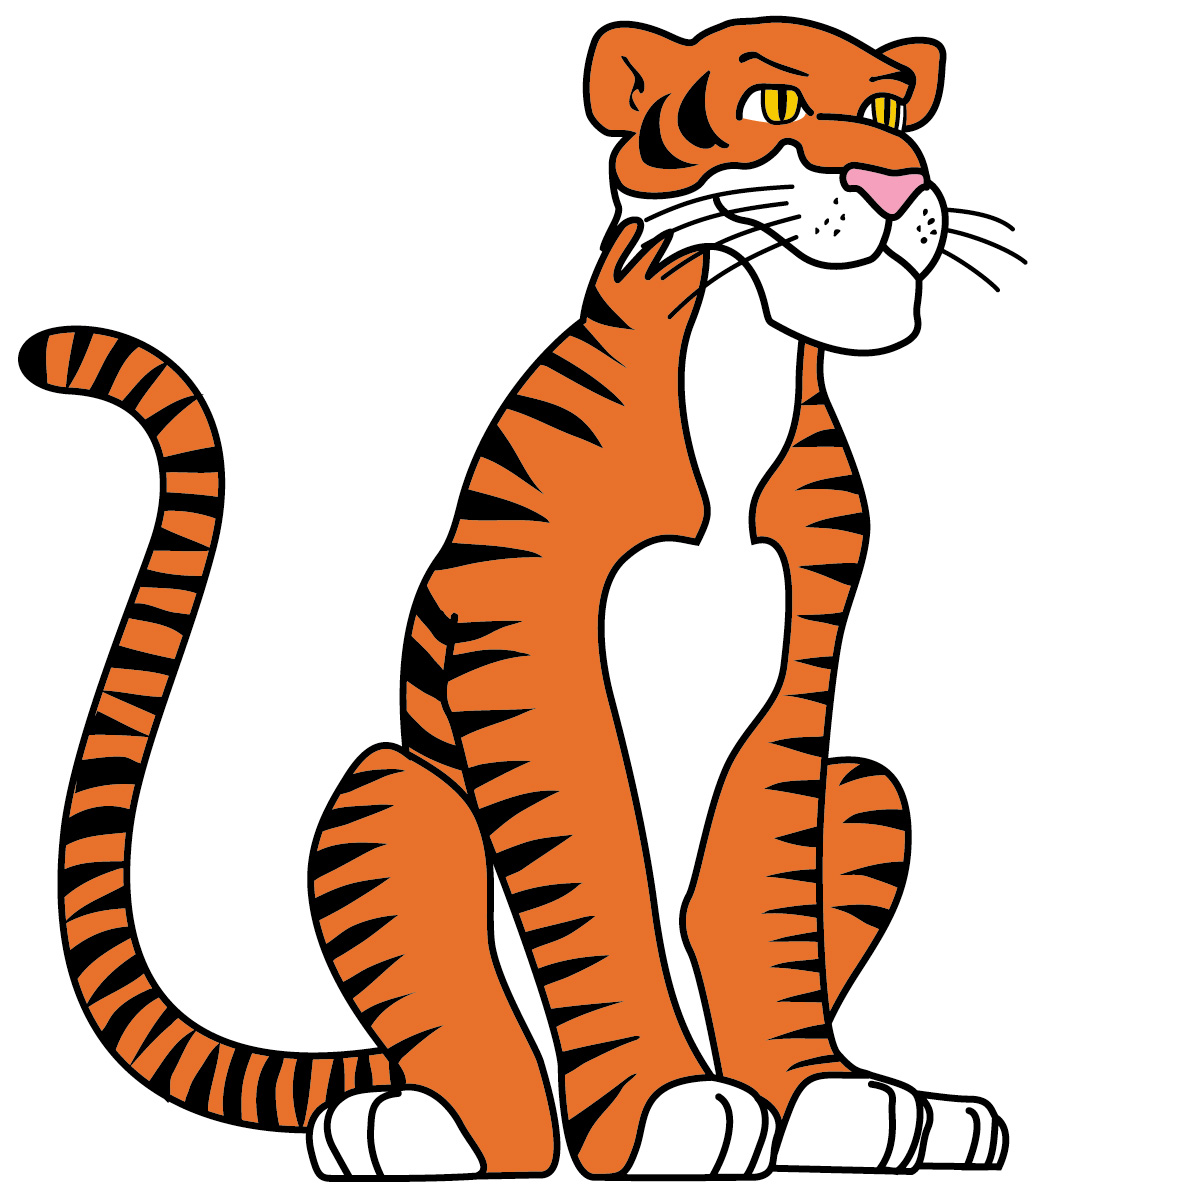 tiger cliparts clipart panda free clipart images tiger clip art images free tigger clip art images black and white